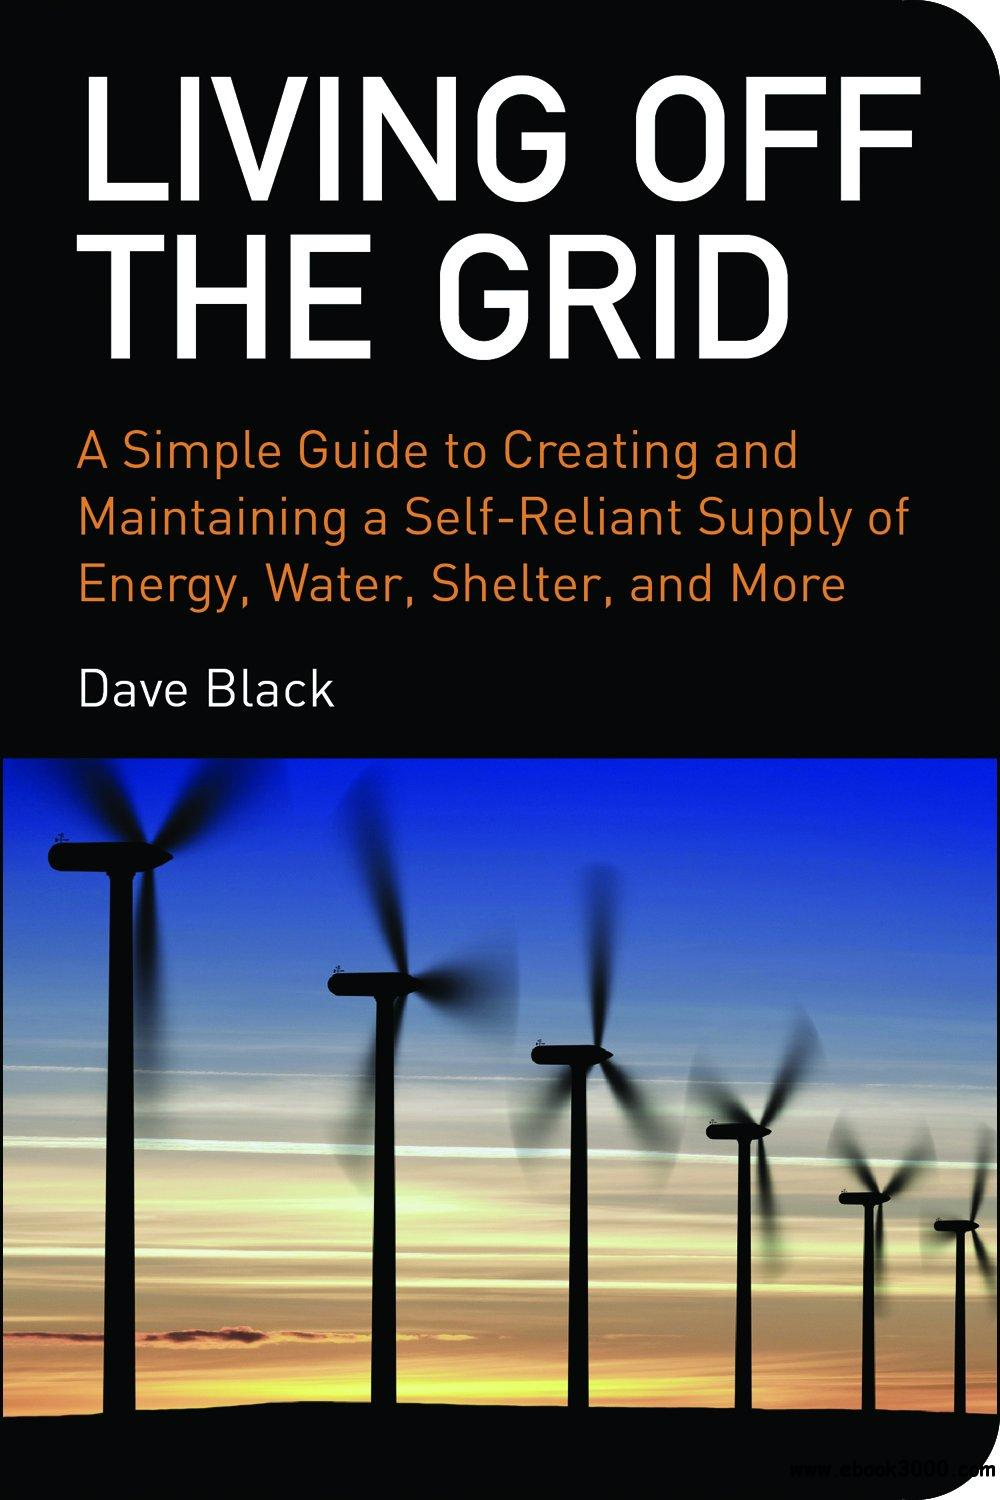 Living off the Grid: A Simple Guide to Creating and Maintaining a Self-reliant Supply of Energy, Water, Shelter and More free download